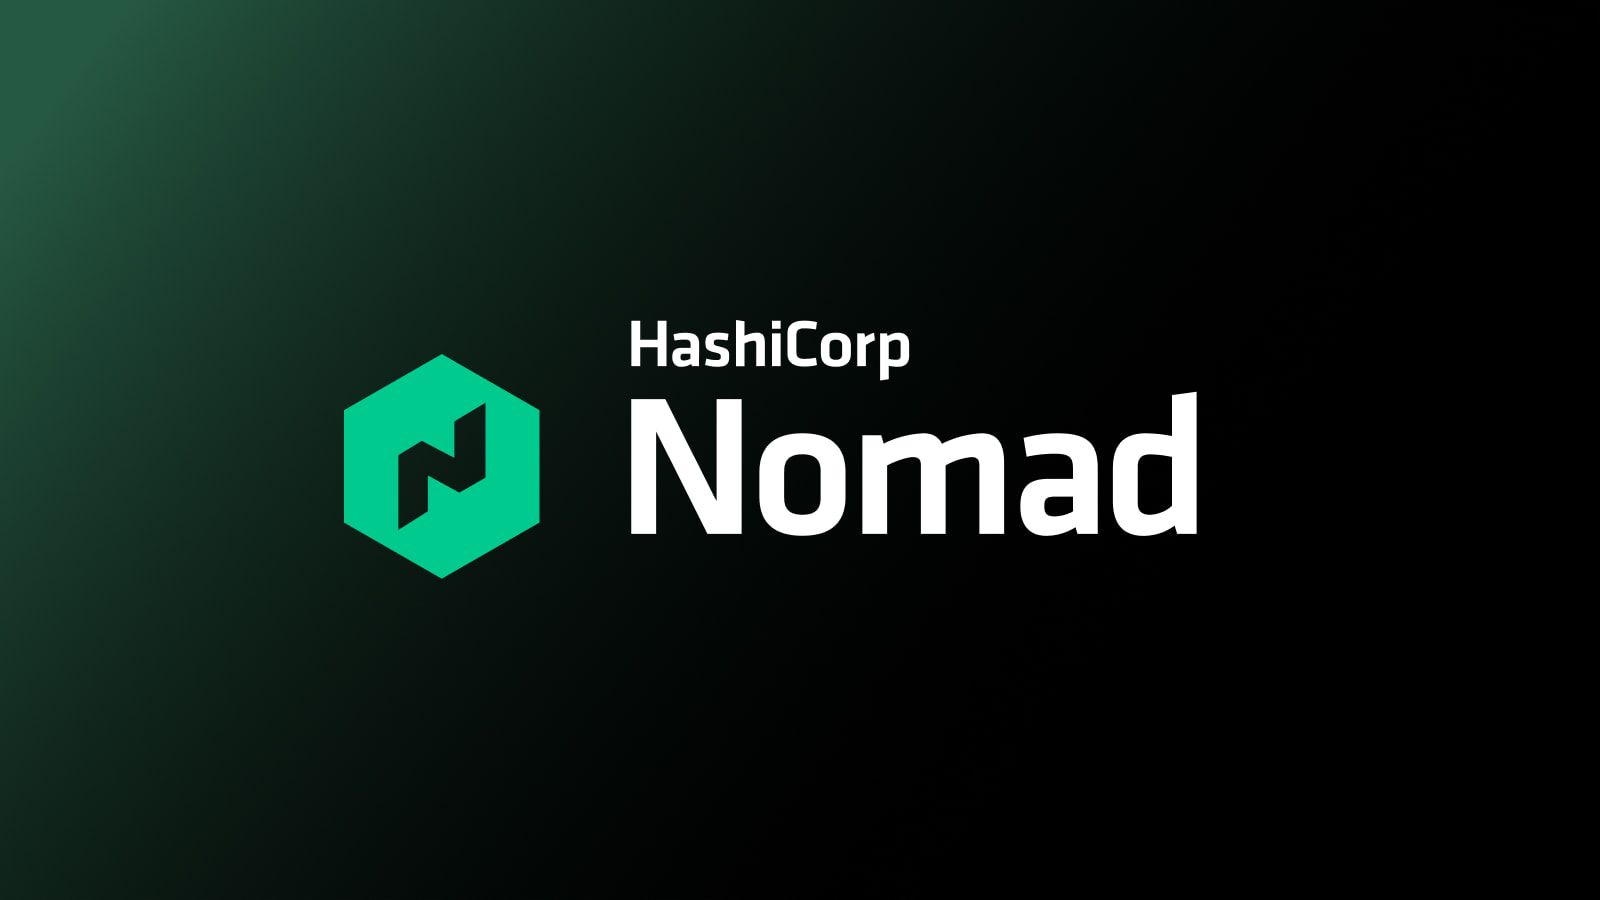 Announcing General Availability of HashiCorp Nomad 1.1